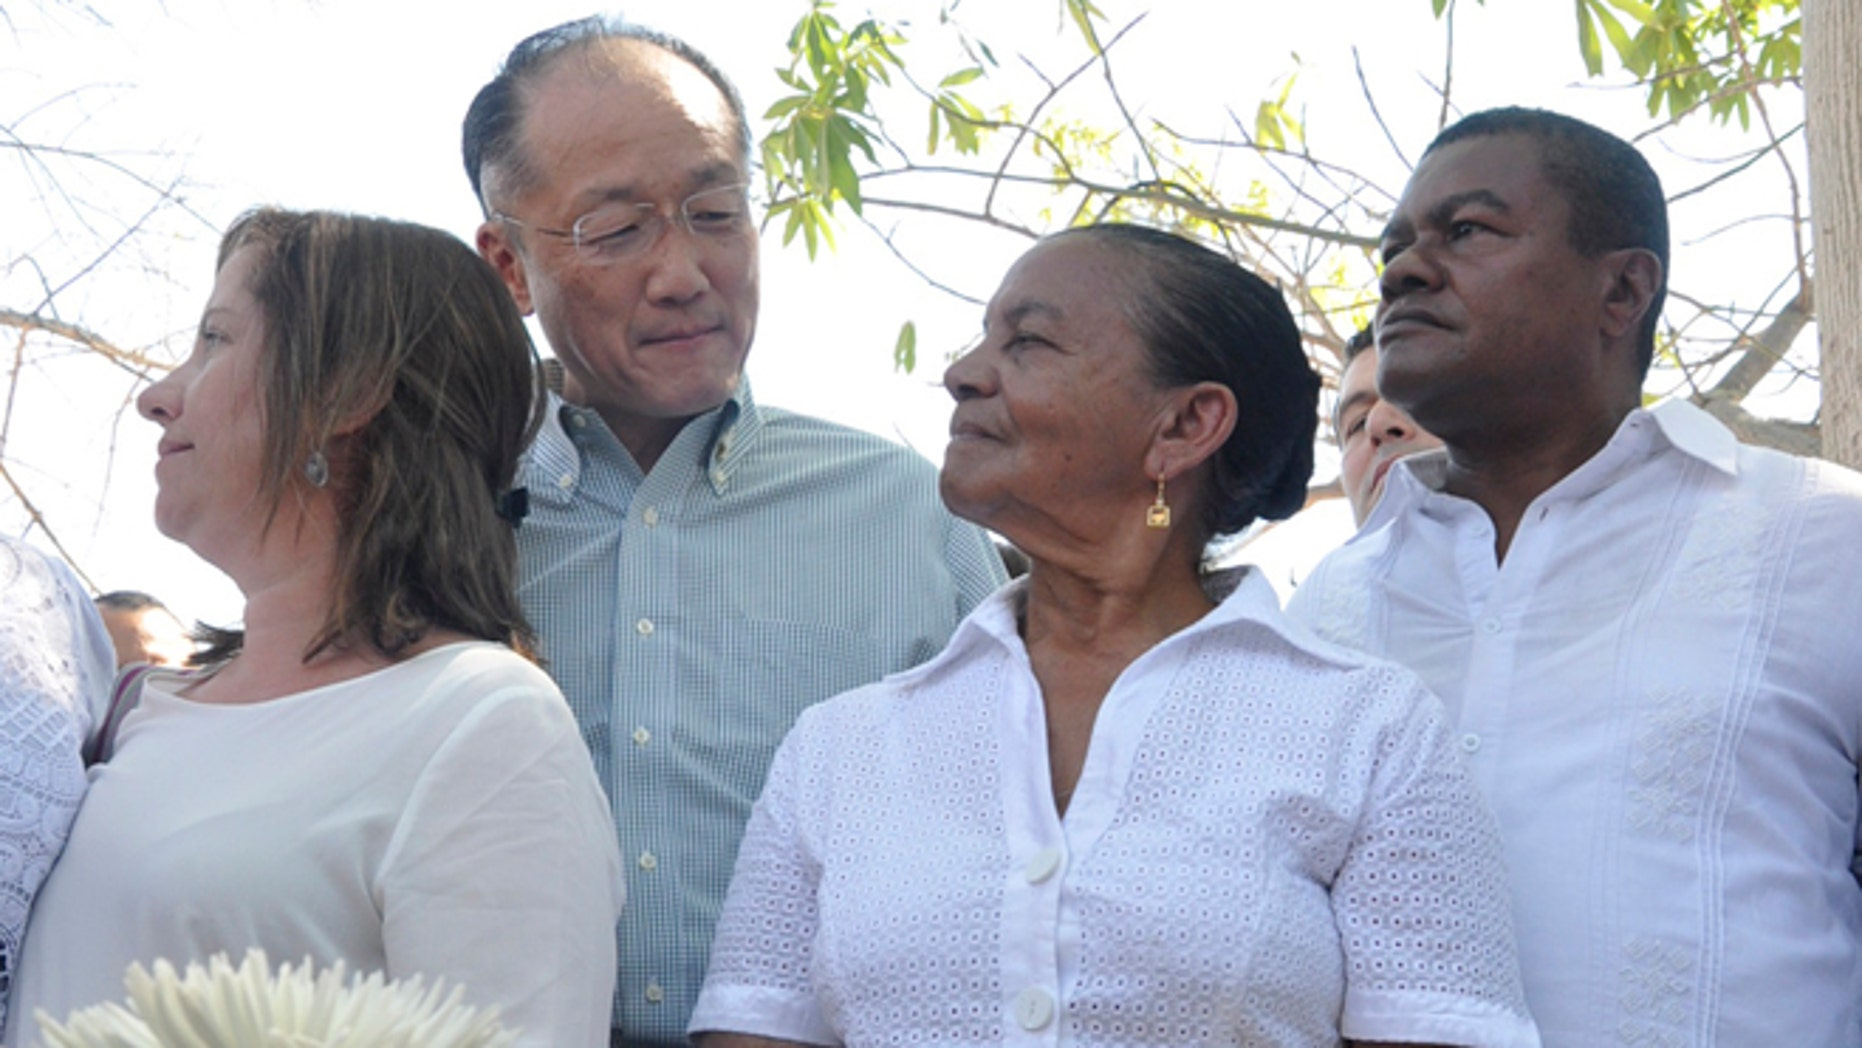 World Bank President Dr. Jim Yong Kim looks at Norma Quiroz, widow of slain community activist Aljemiro Quiroz, in Guacoche, Colombia, Thursday, Jan. 14, 2016.